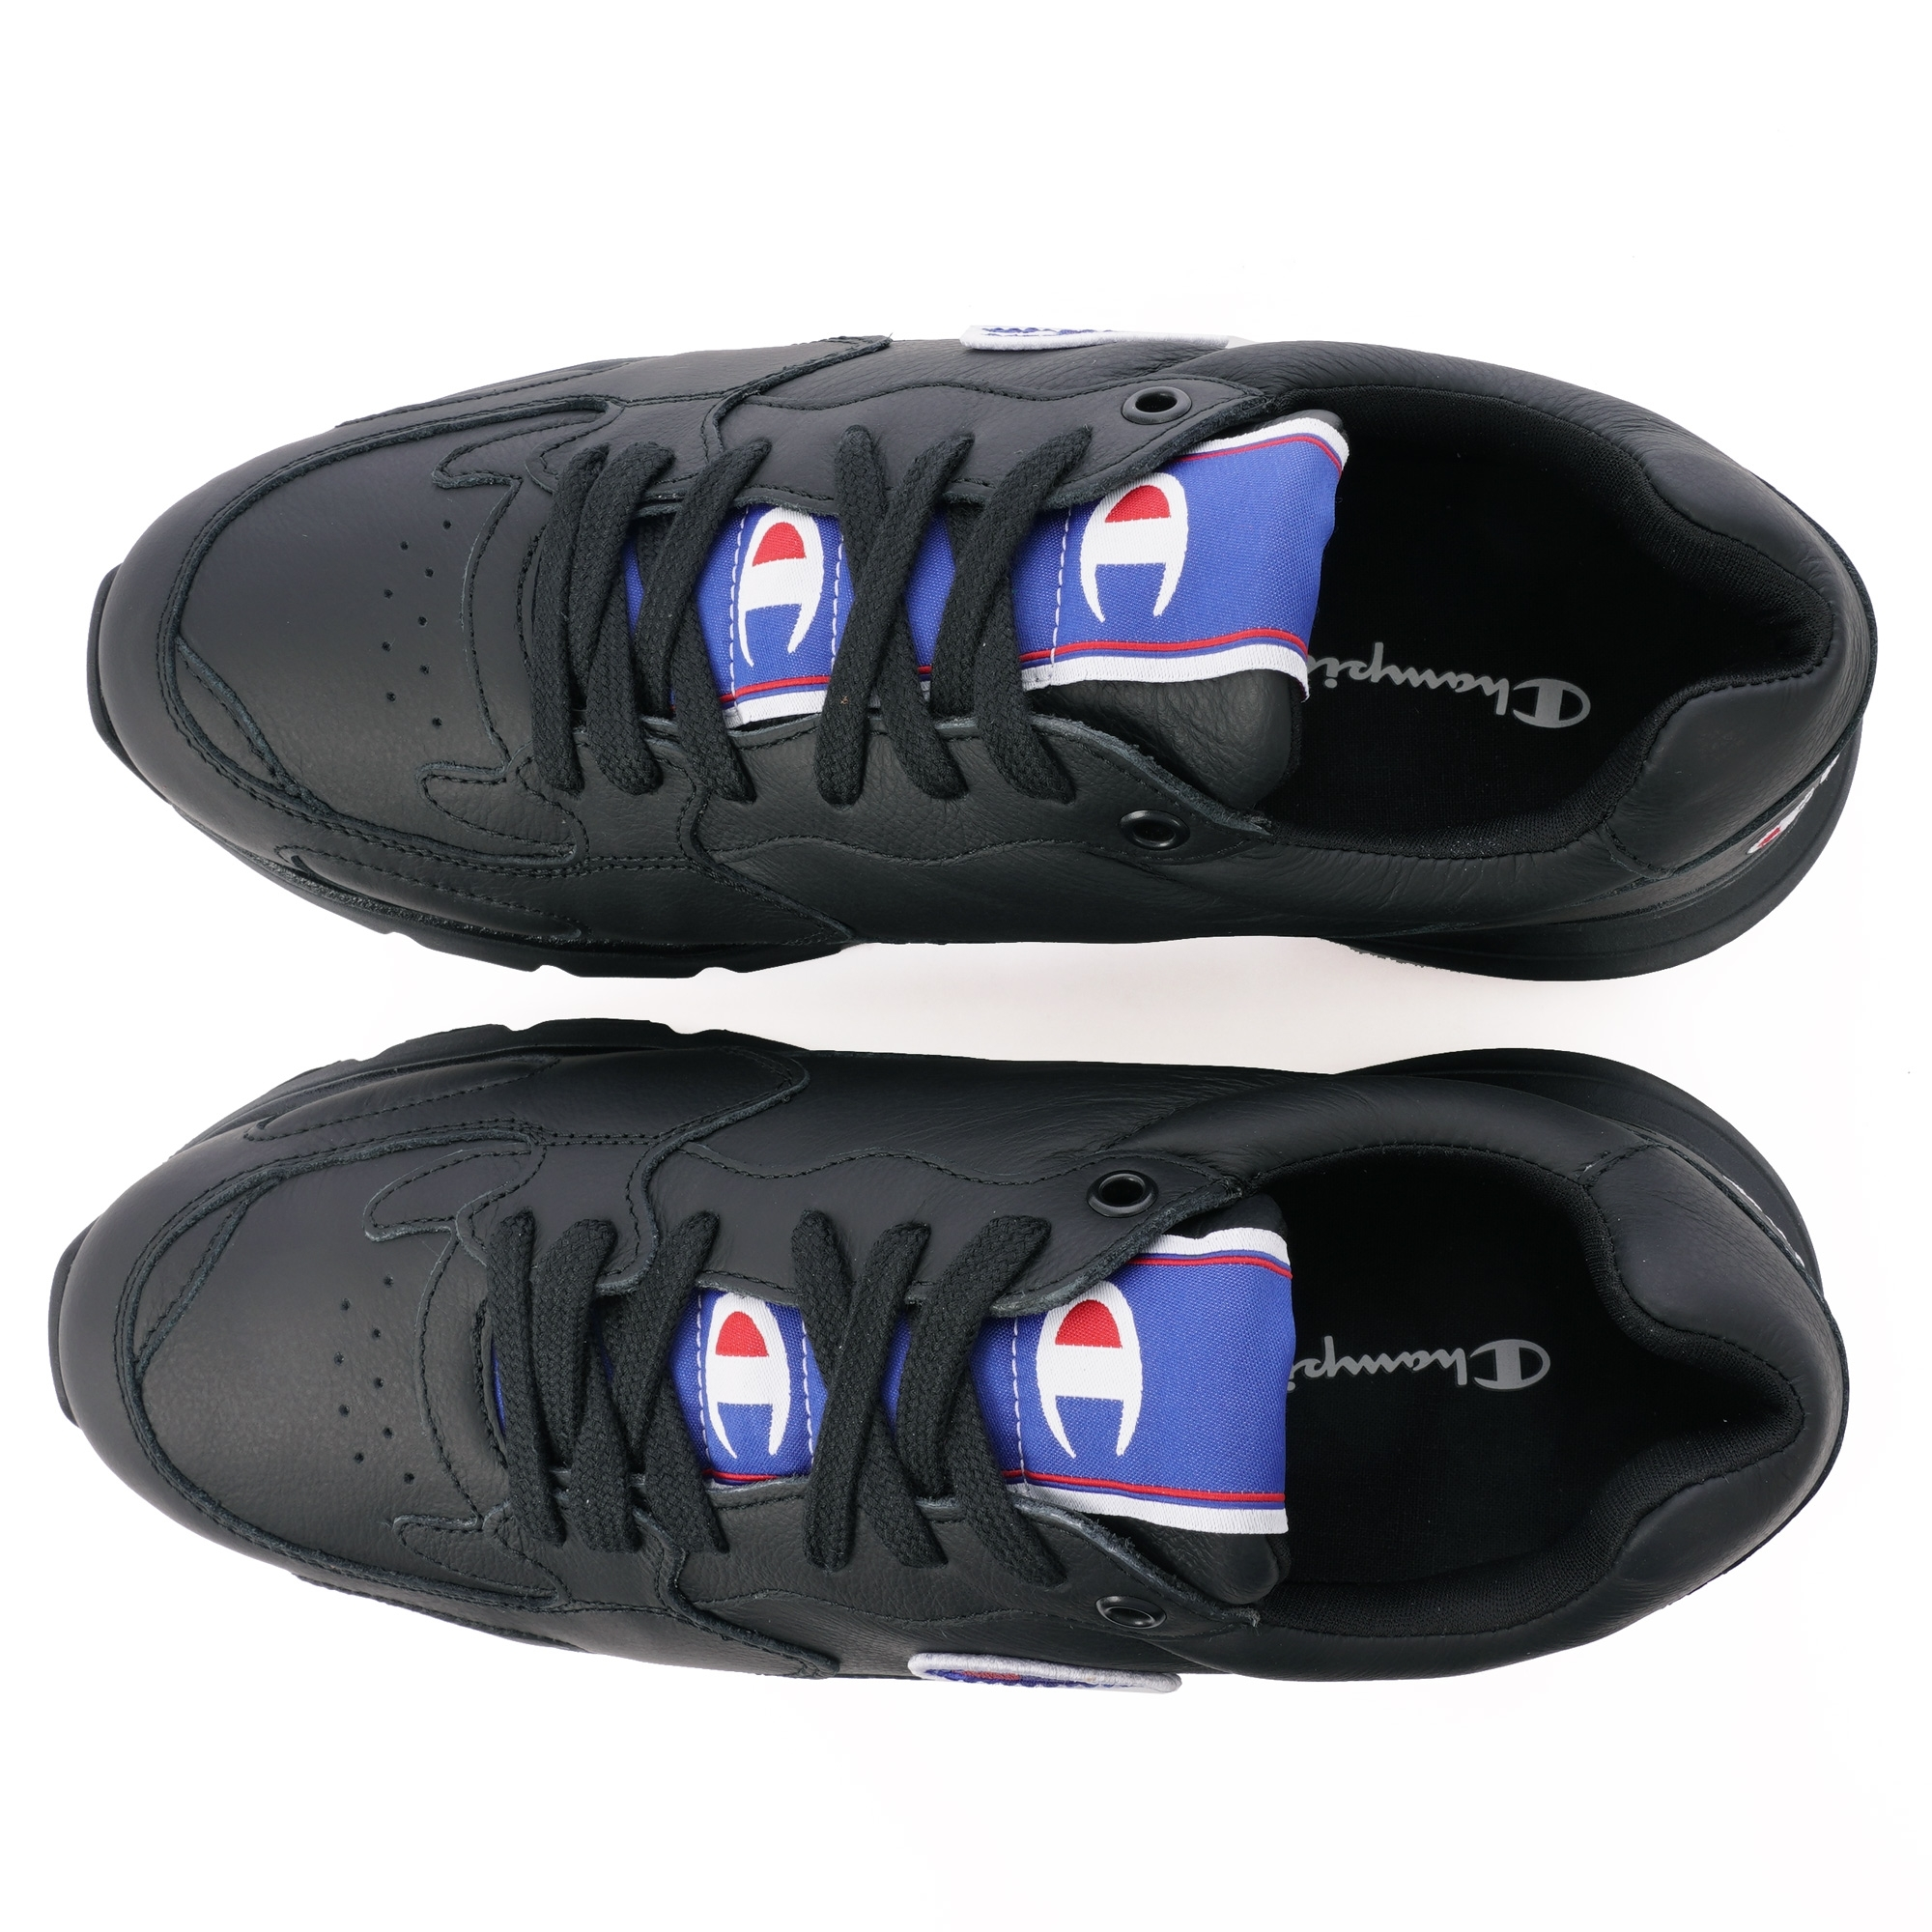 26a858ff7 Champion CWA-1 Leather Sneakers